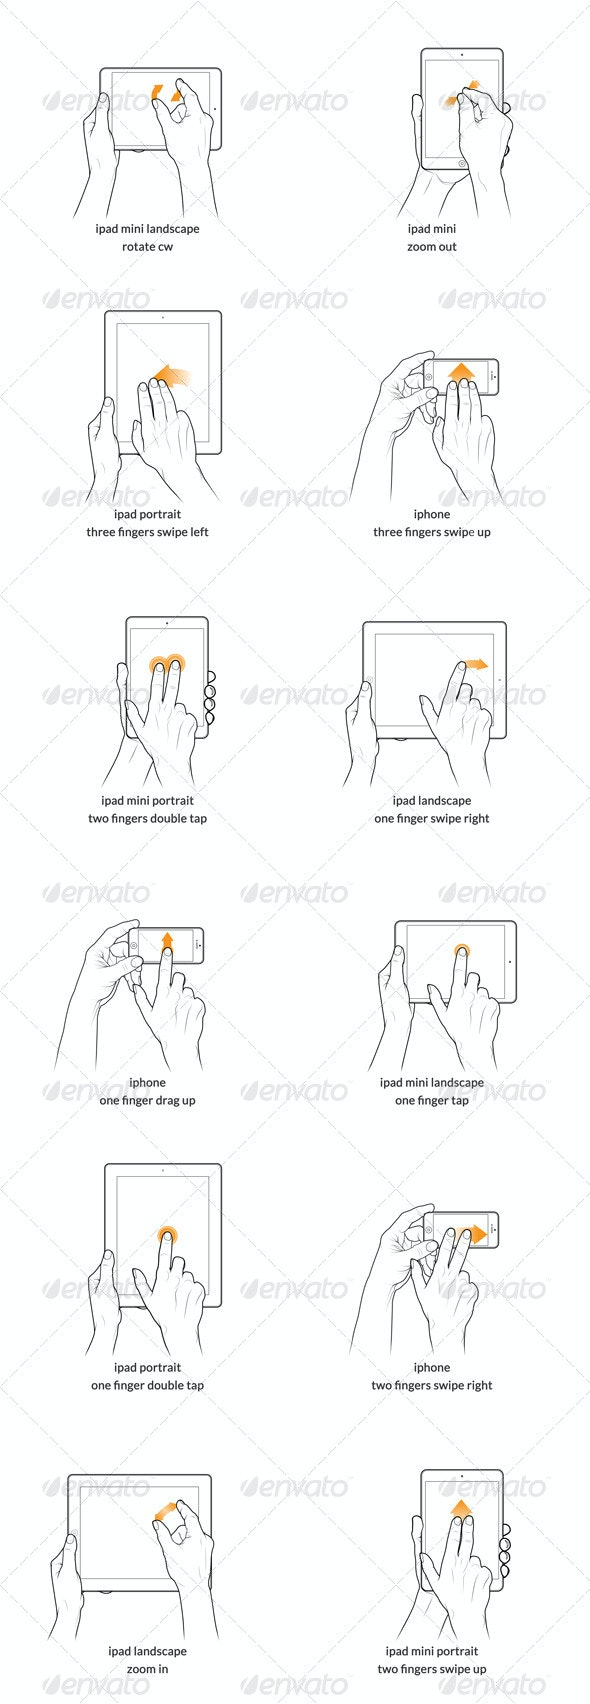 Gestures and Devices - Technology Conceptual